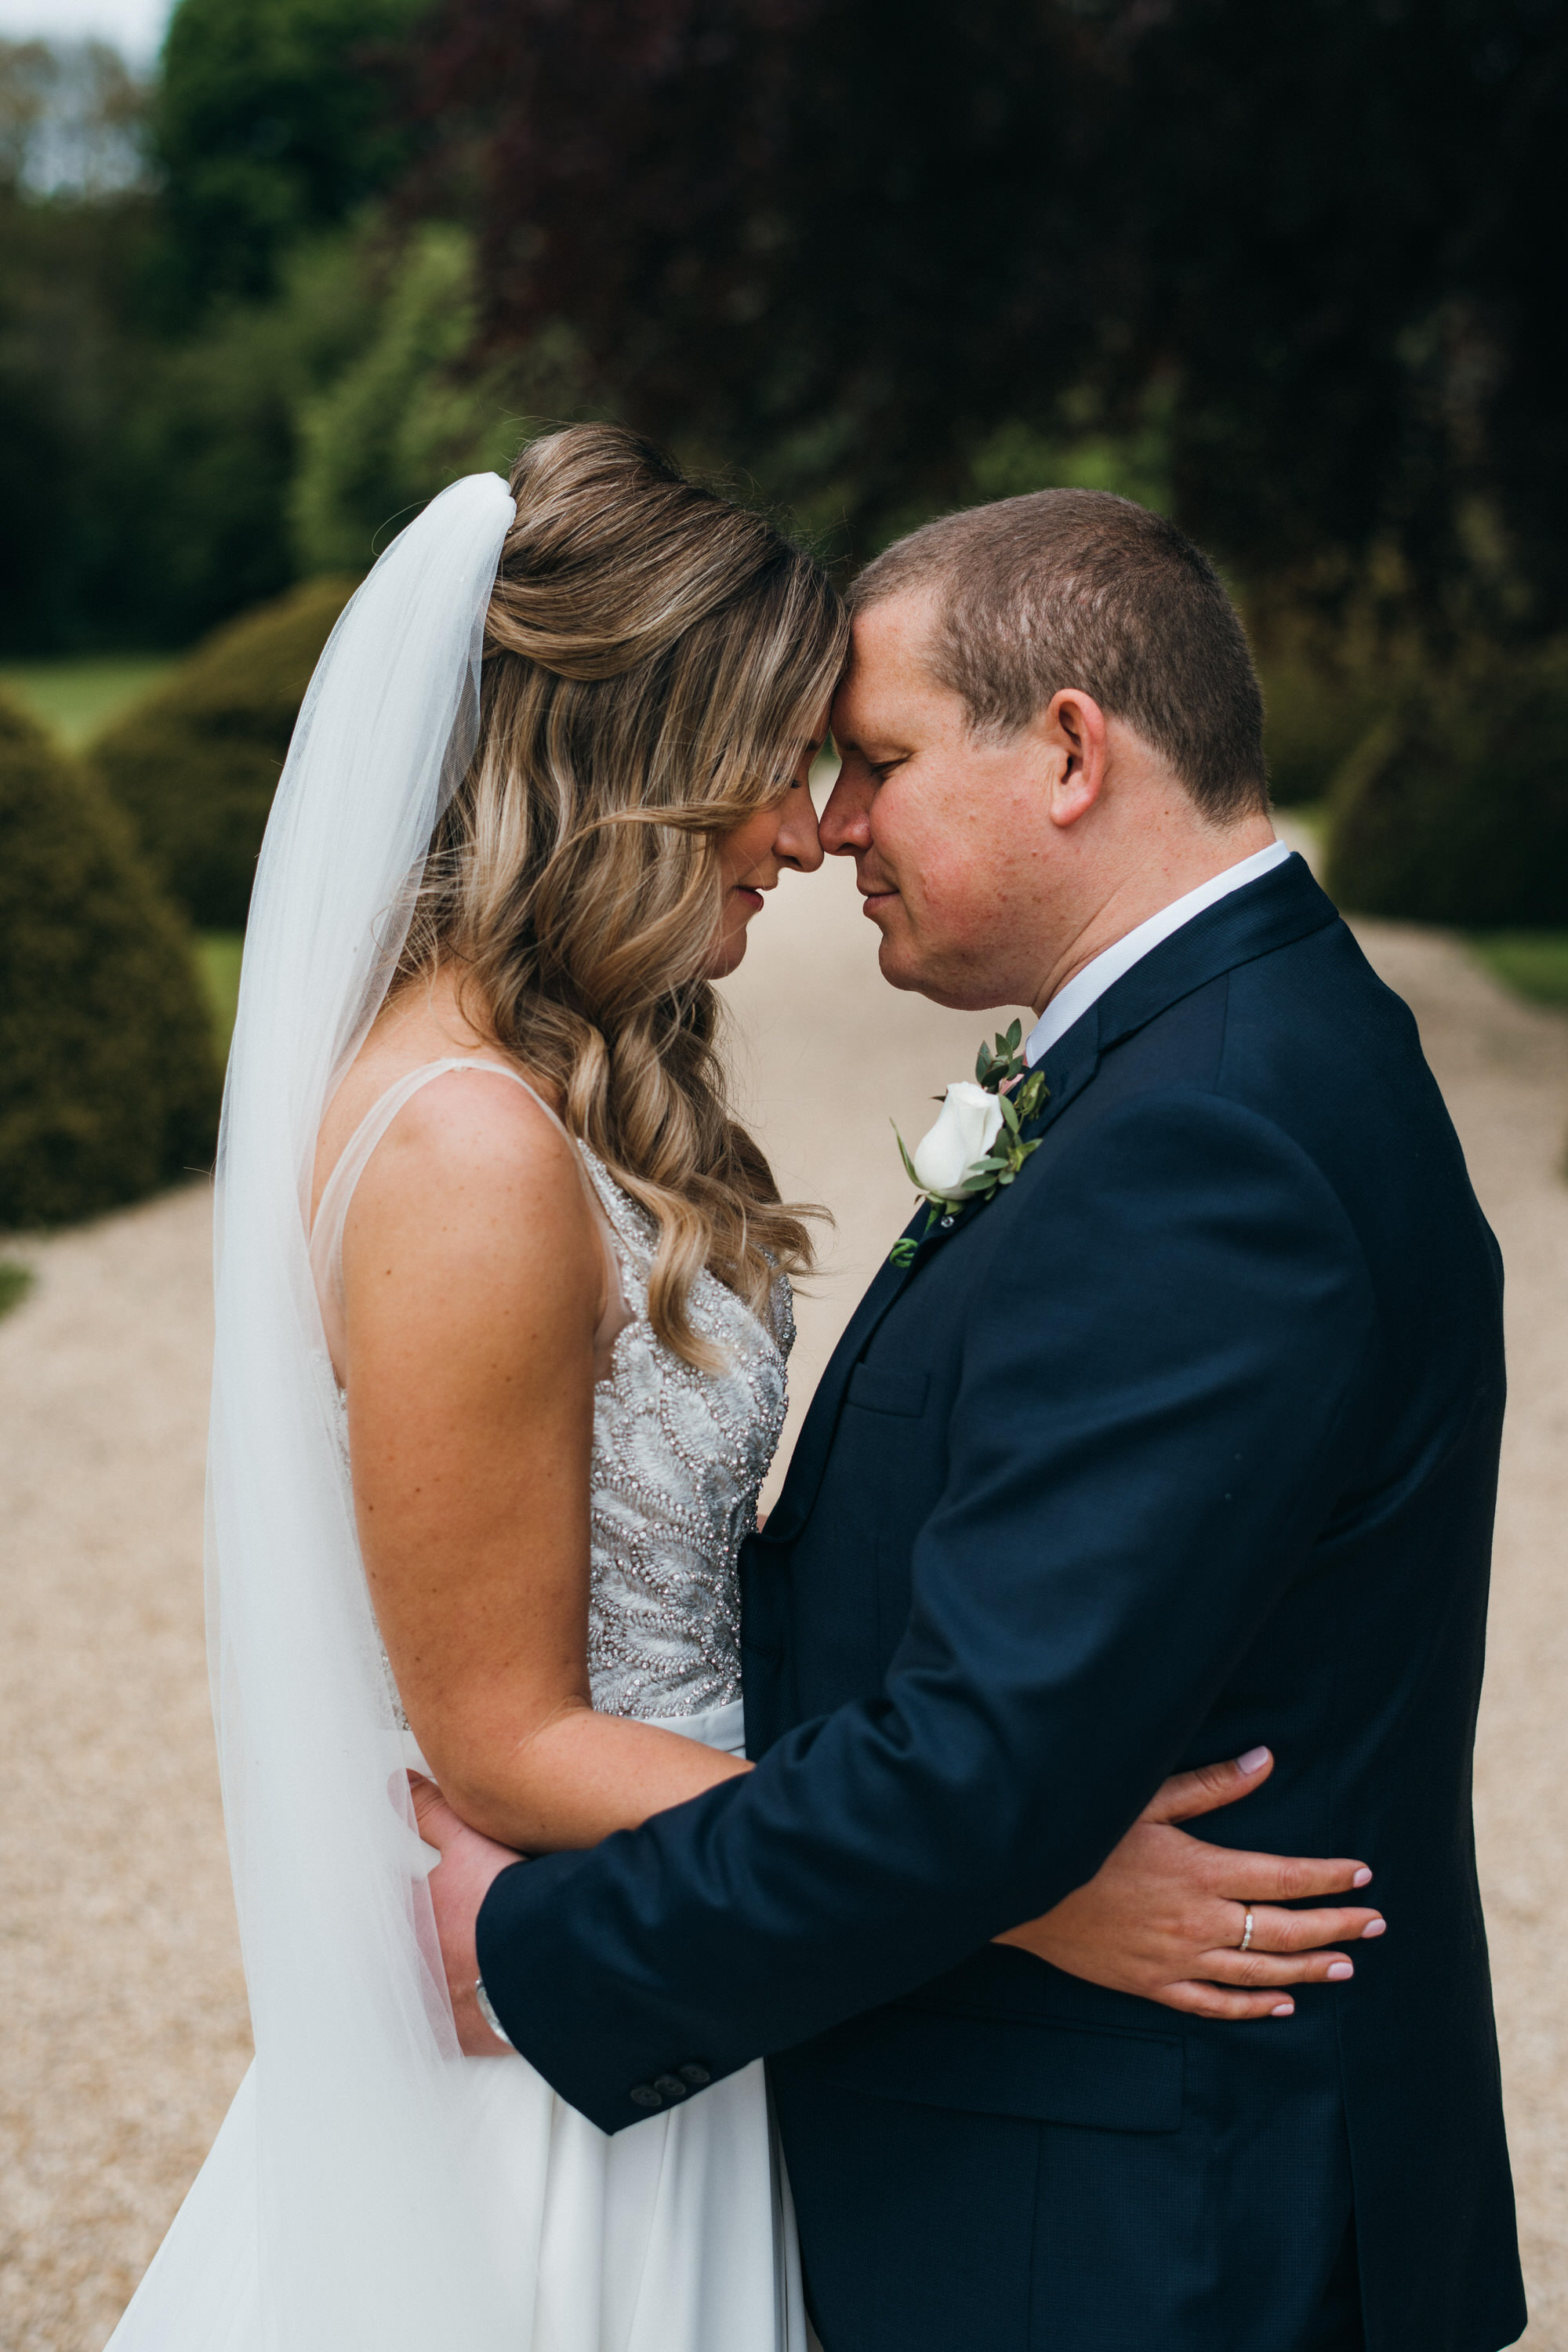 Manor by the lake wedding photographer 38